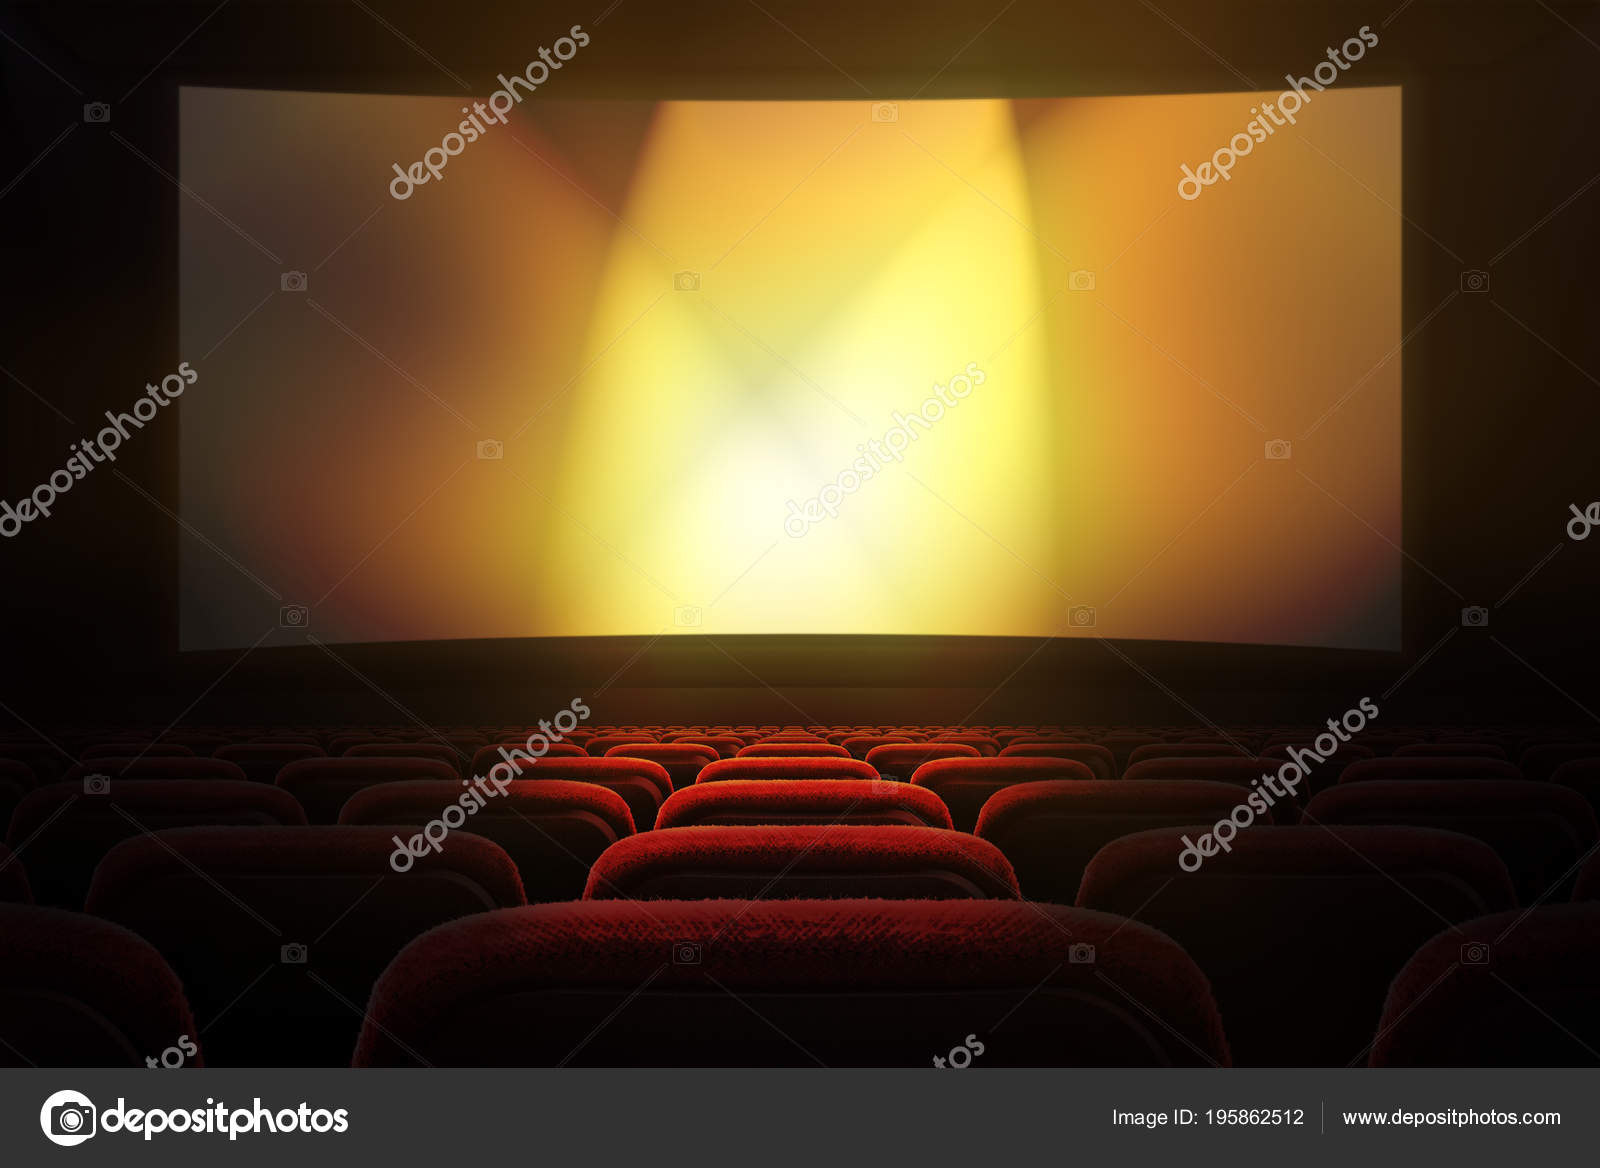 Movie Theatre Wallpaper Movie Theater Row Red Seats